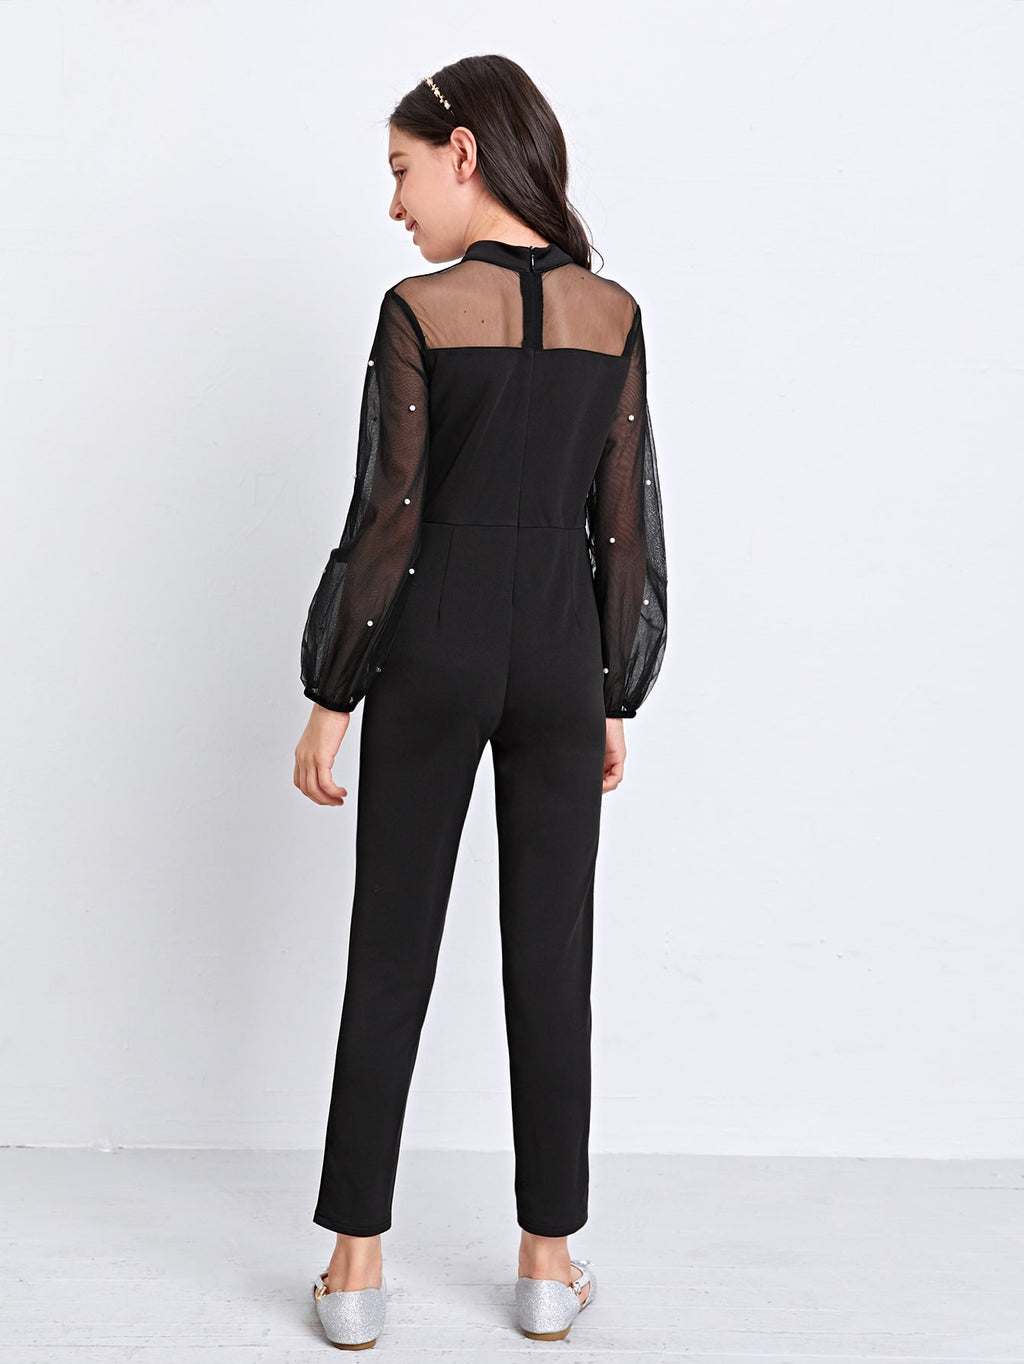 Girls Pearls Beaded Sheer Mesh Yoke Jumpsuit